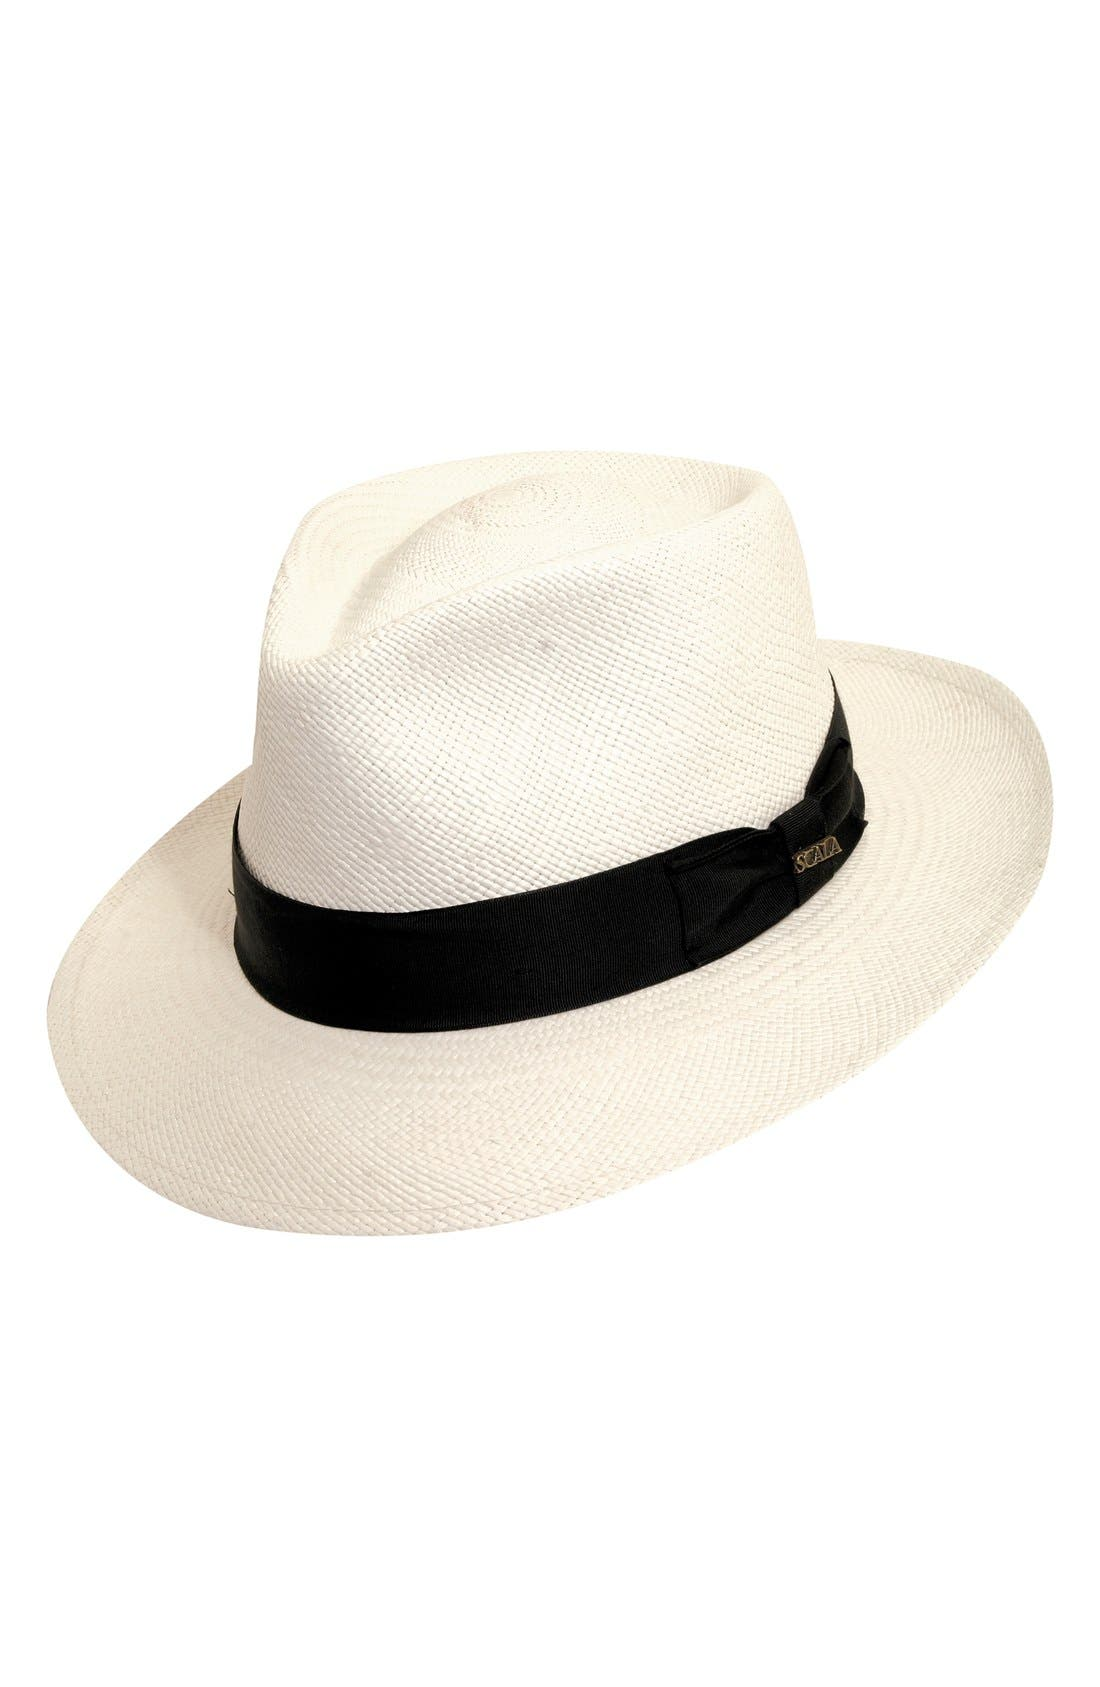 SCALA Straw Panama Hat